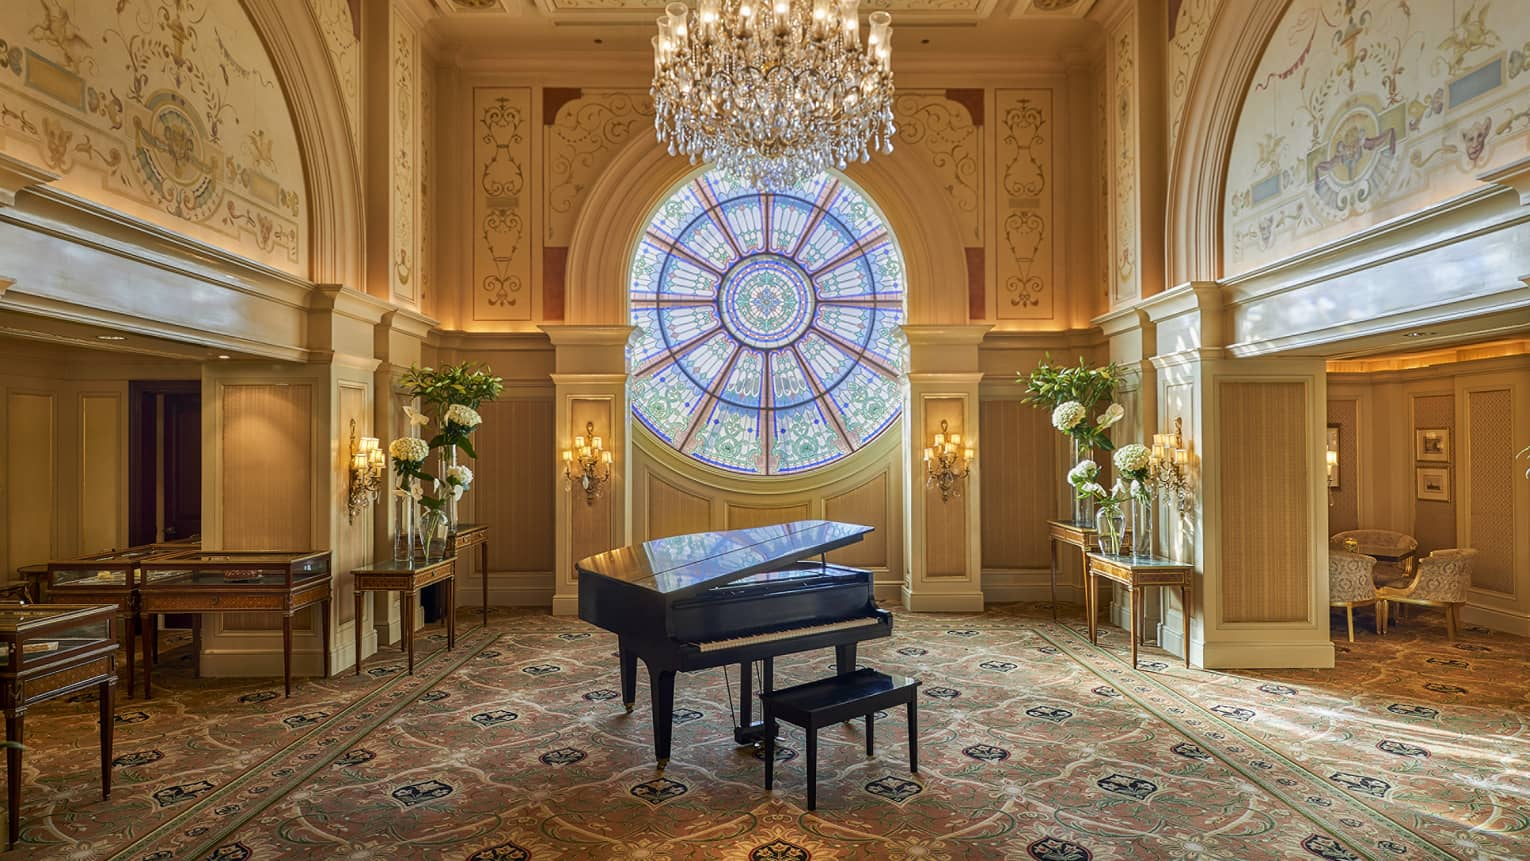 Piano in the Tea Lounge with stained-glass window, the Ocular, in background